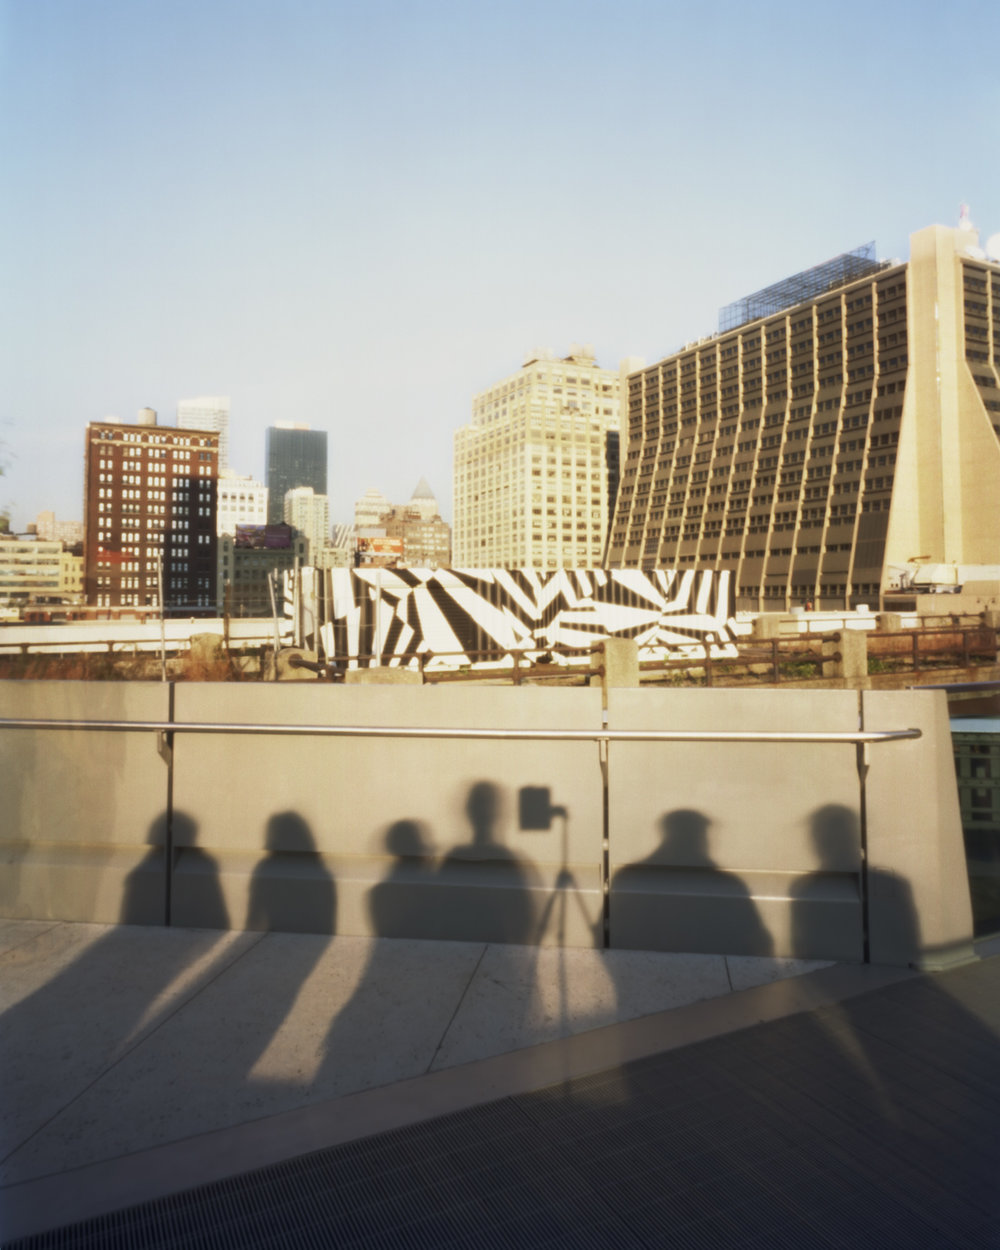 View of buildings from the Highline with shadows of people